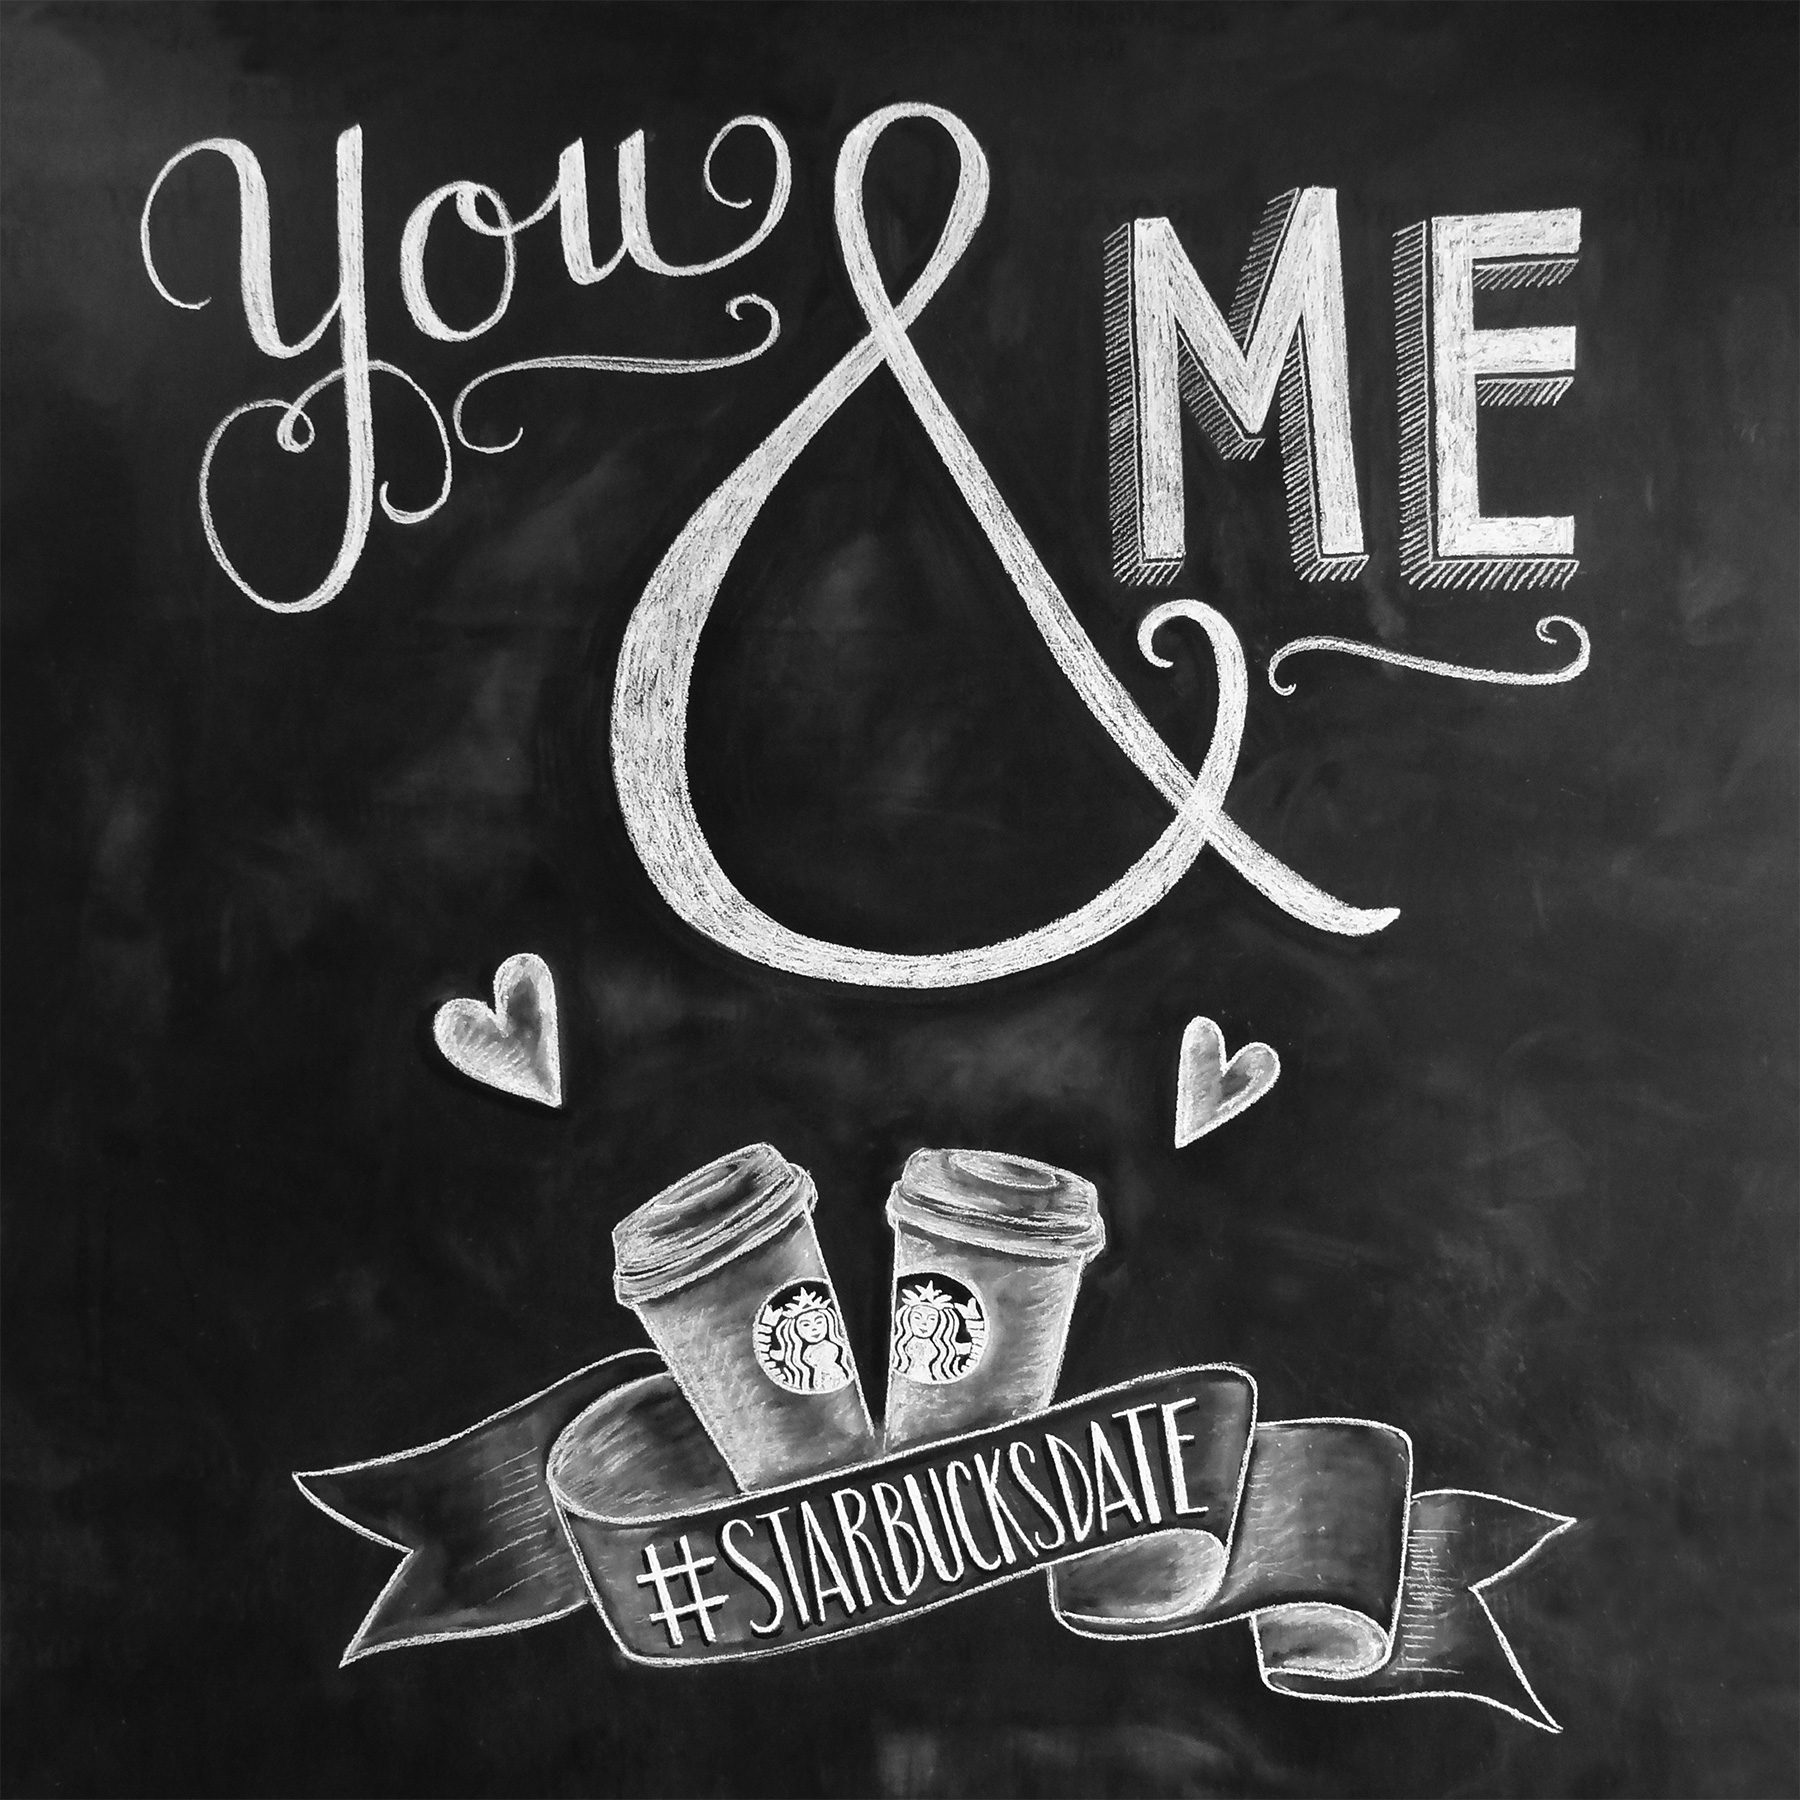 #starbucksdate chalkboard art designed by Valerie McKeehan for Starbucks